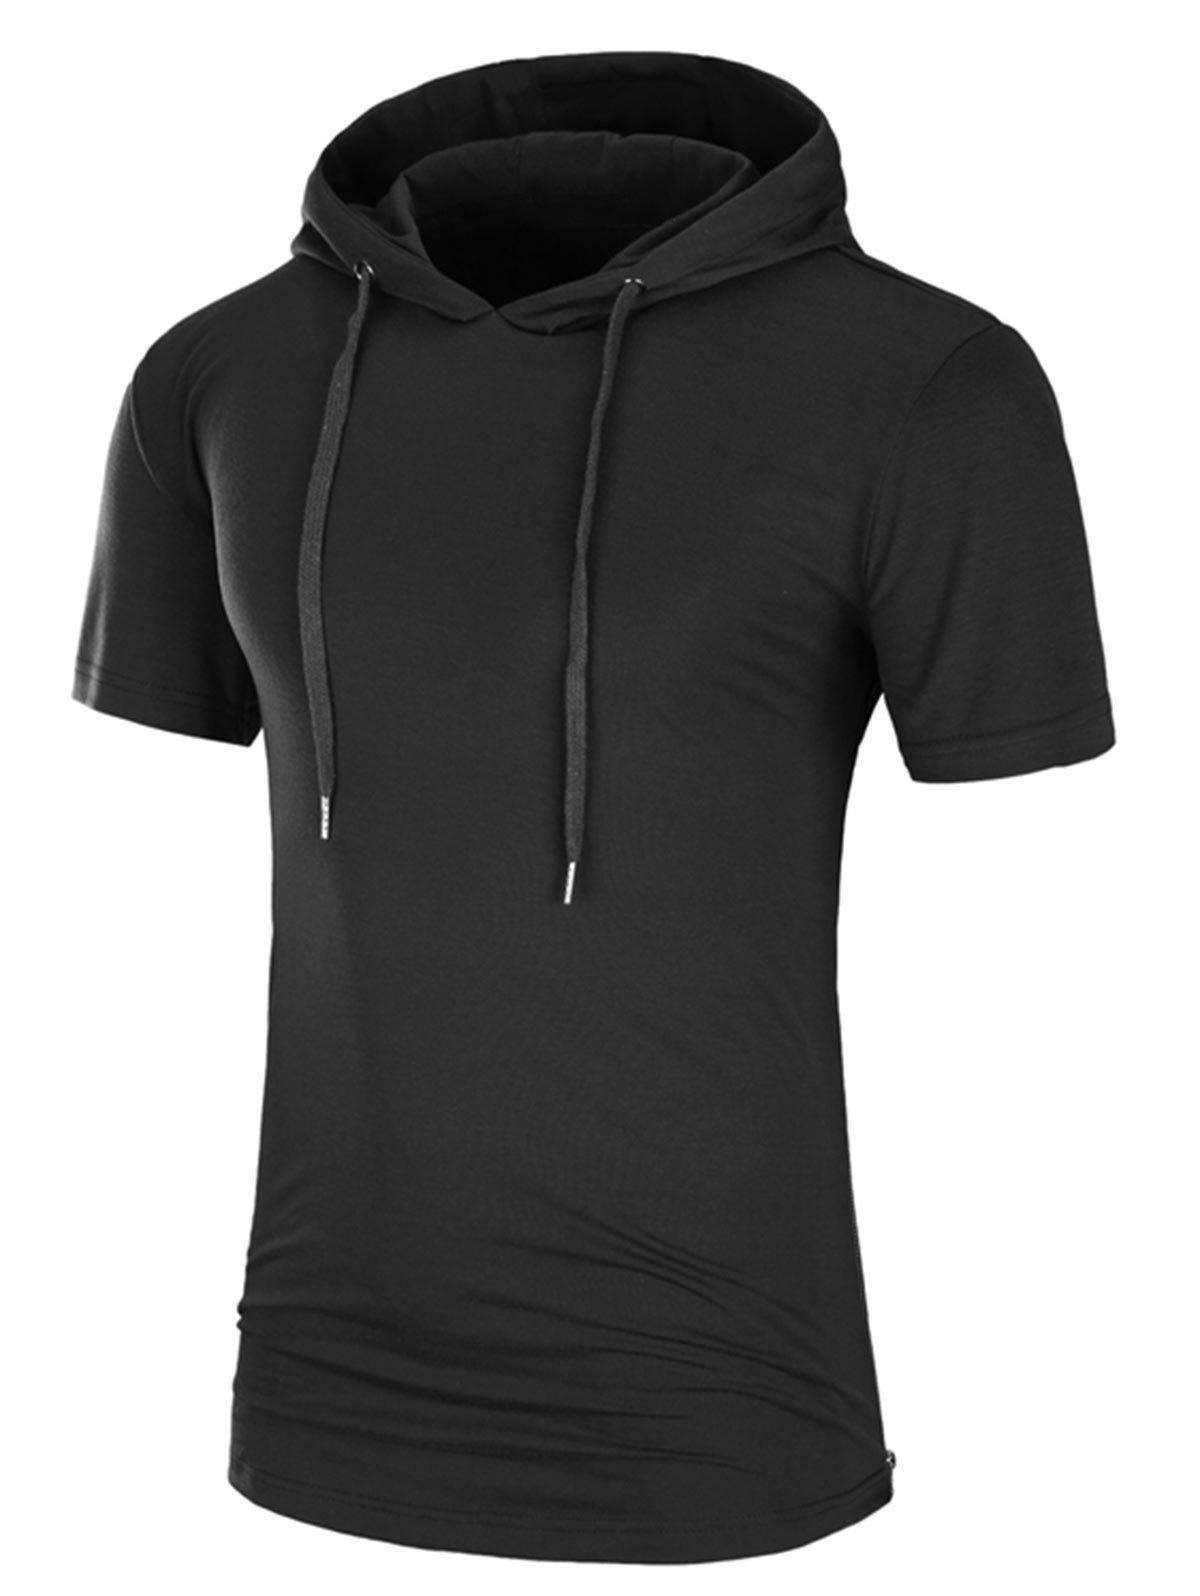 Hooded Side Zipper Longline T-Shirt - BLACK 2XL